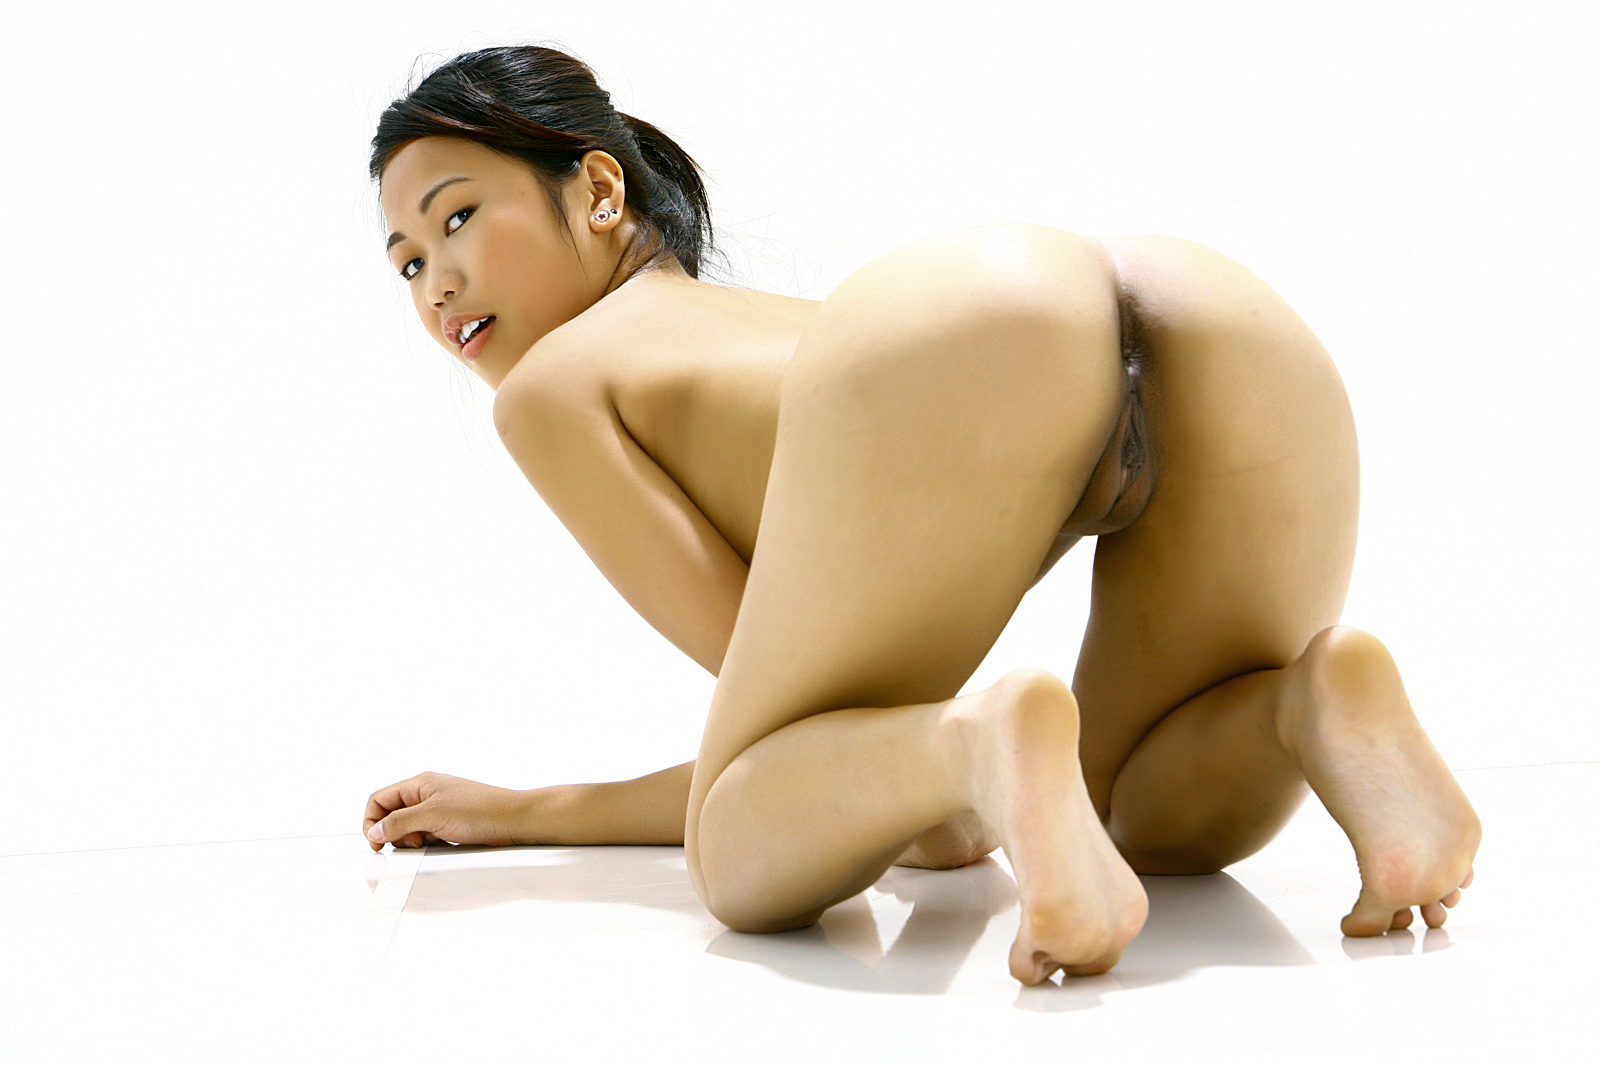 asians stripping